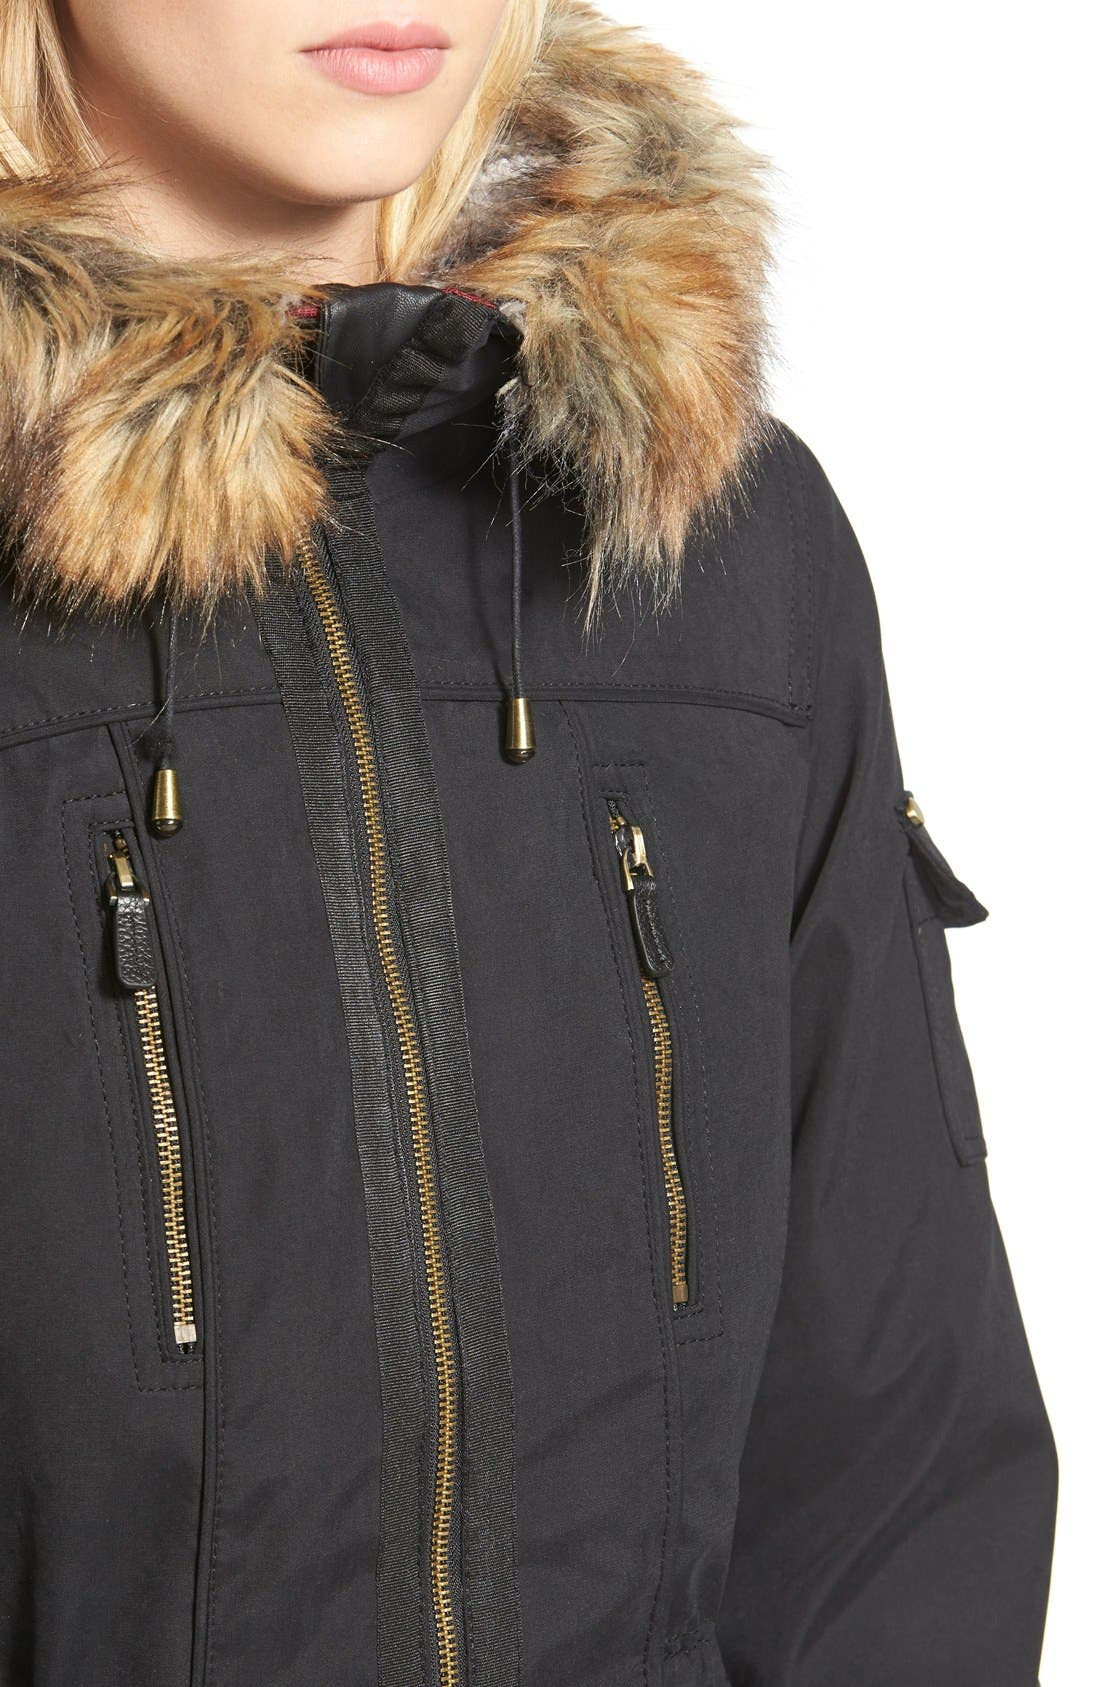 1 MADISON, Faux Fur Trim Parka, Alternate thumbnail 2, color, 001